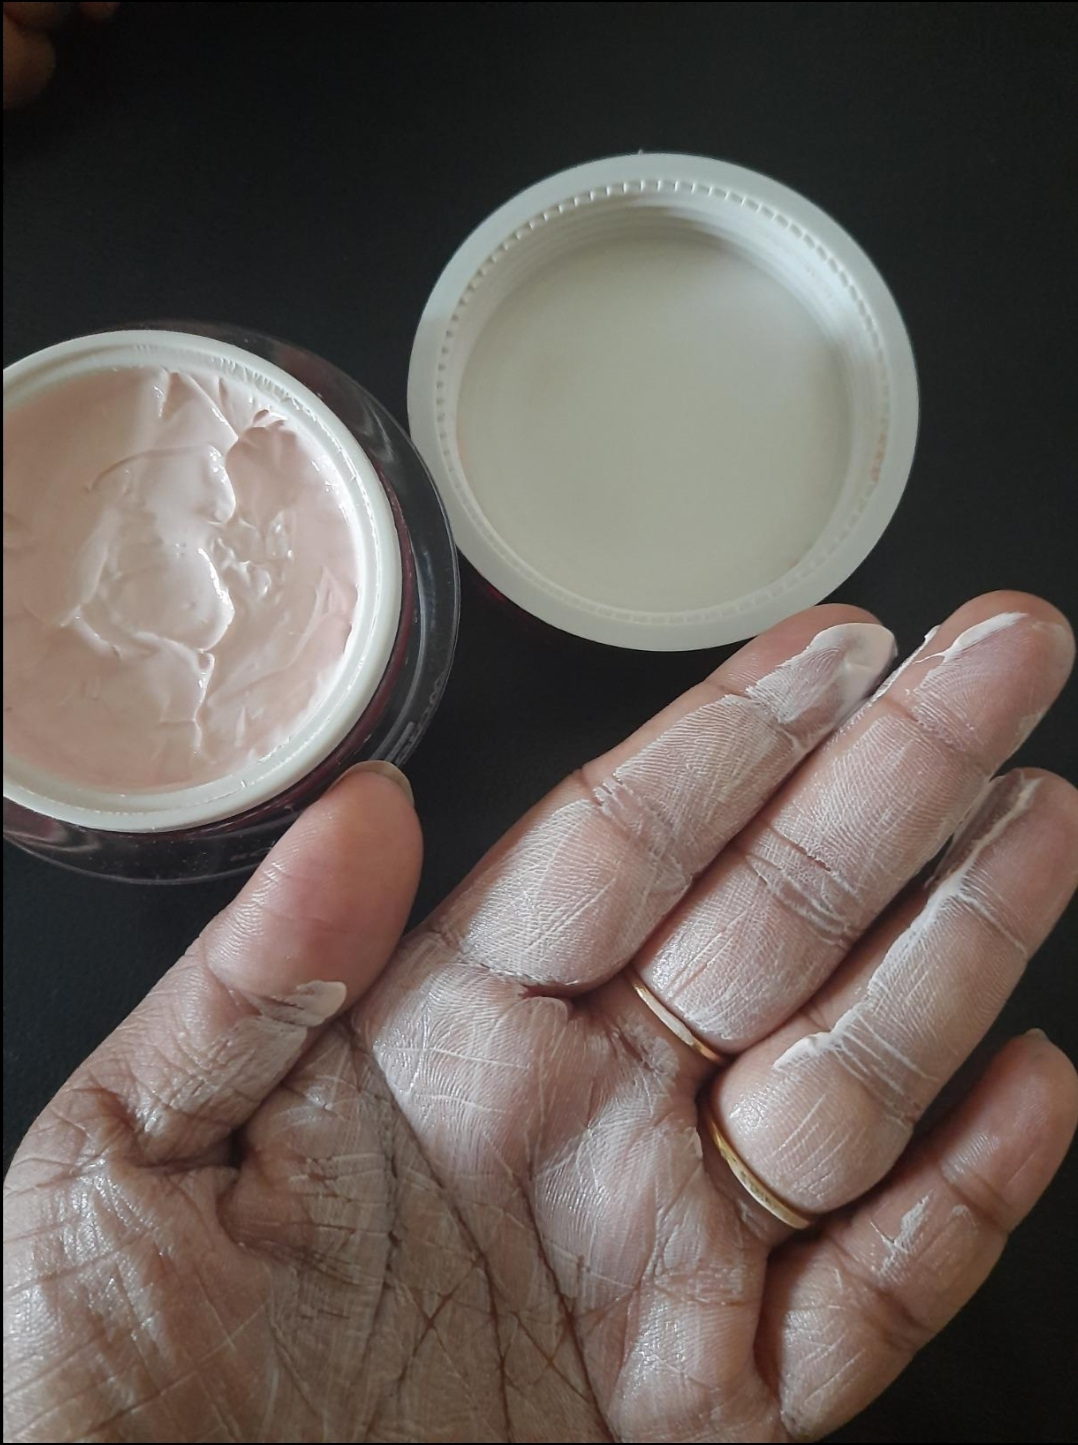 St.Botanica Bulgarian Rose Otto Glow Day Cream pic 1-Amazing Day Cream!-By satzworldlylifestyle_satabdi_das_sen